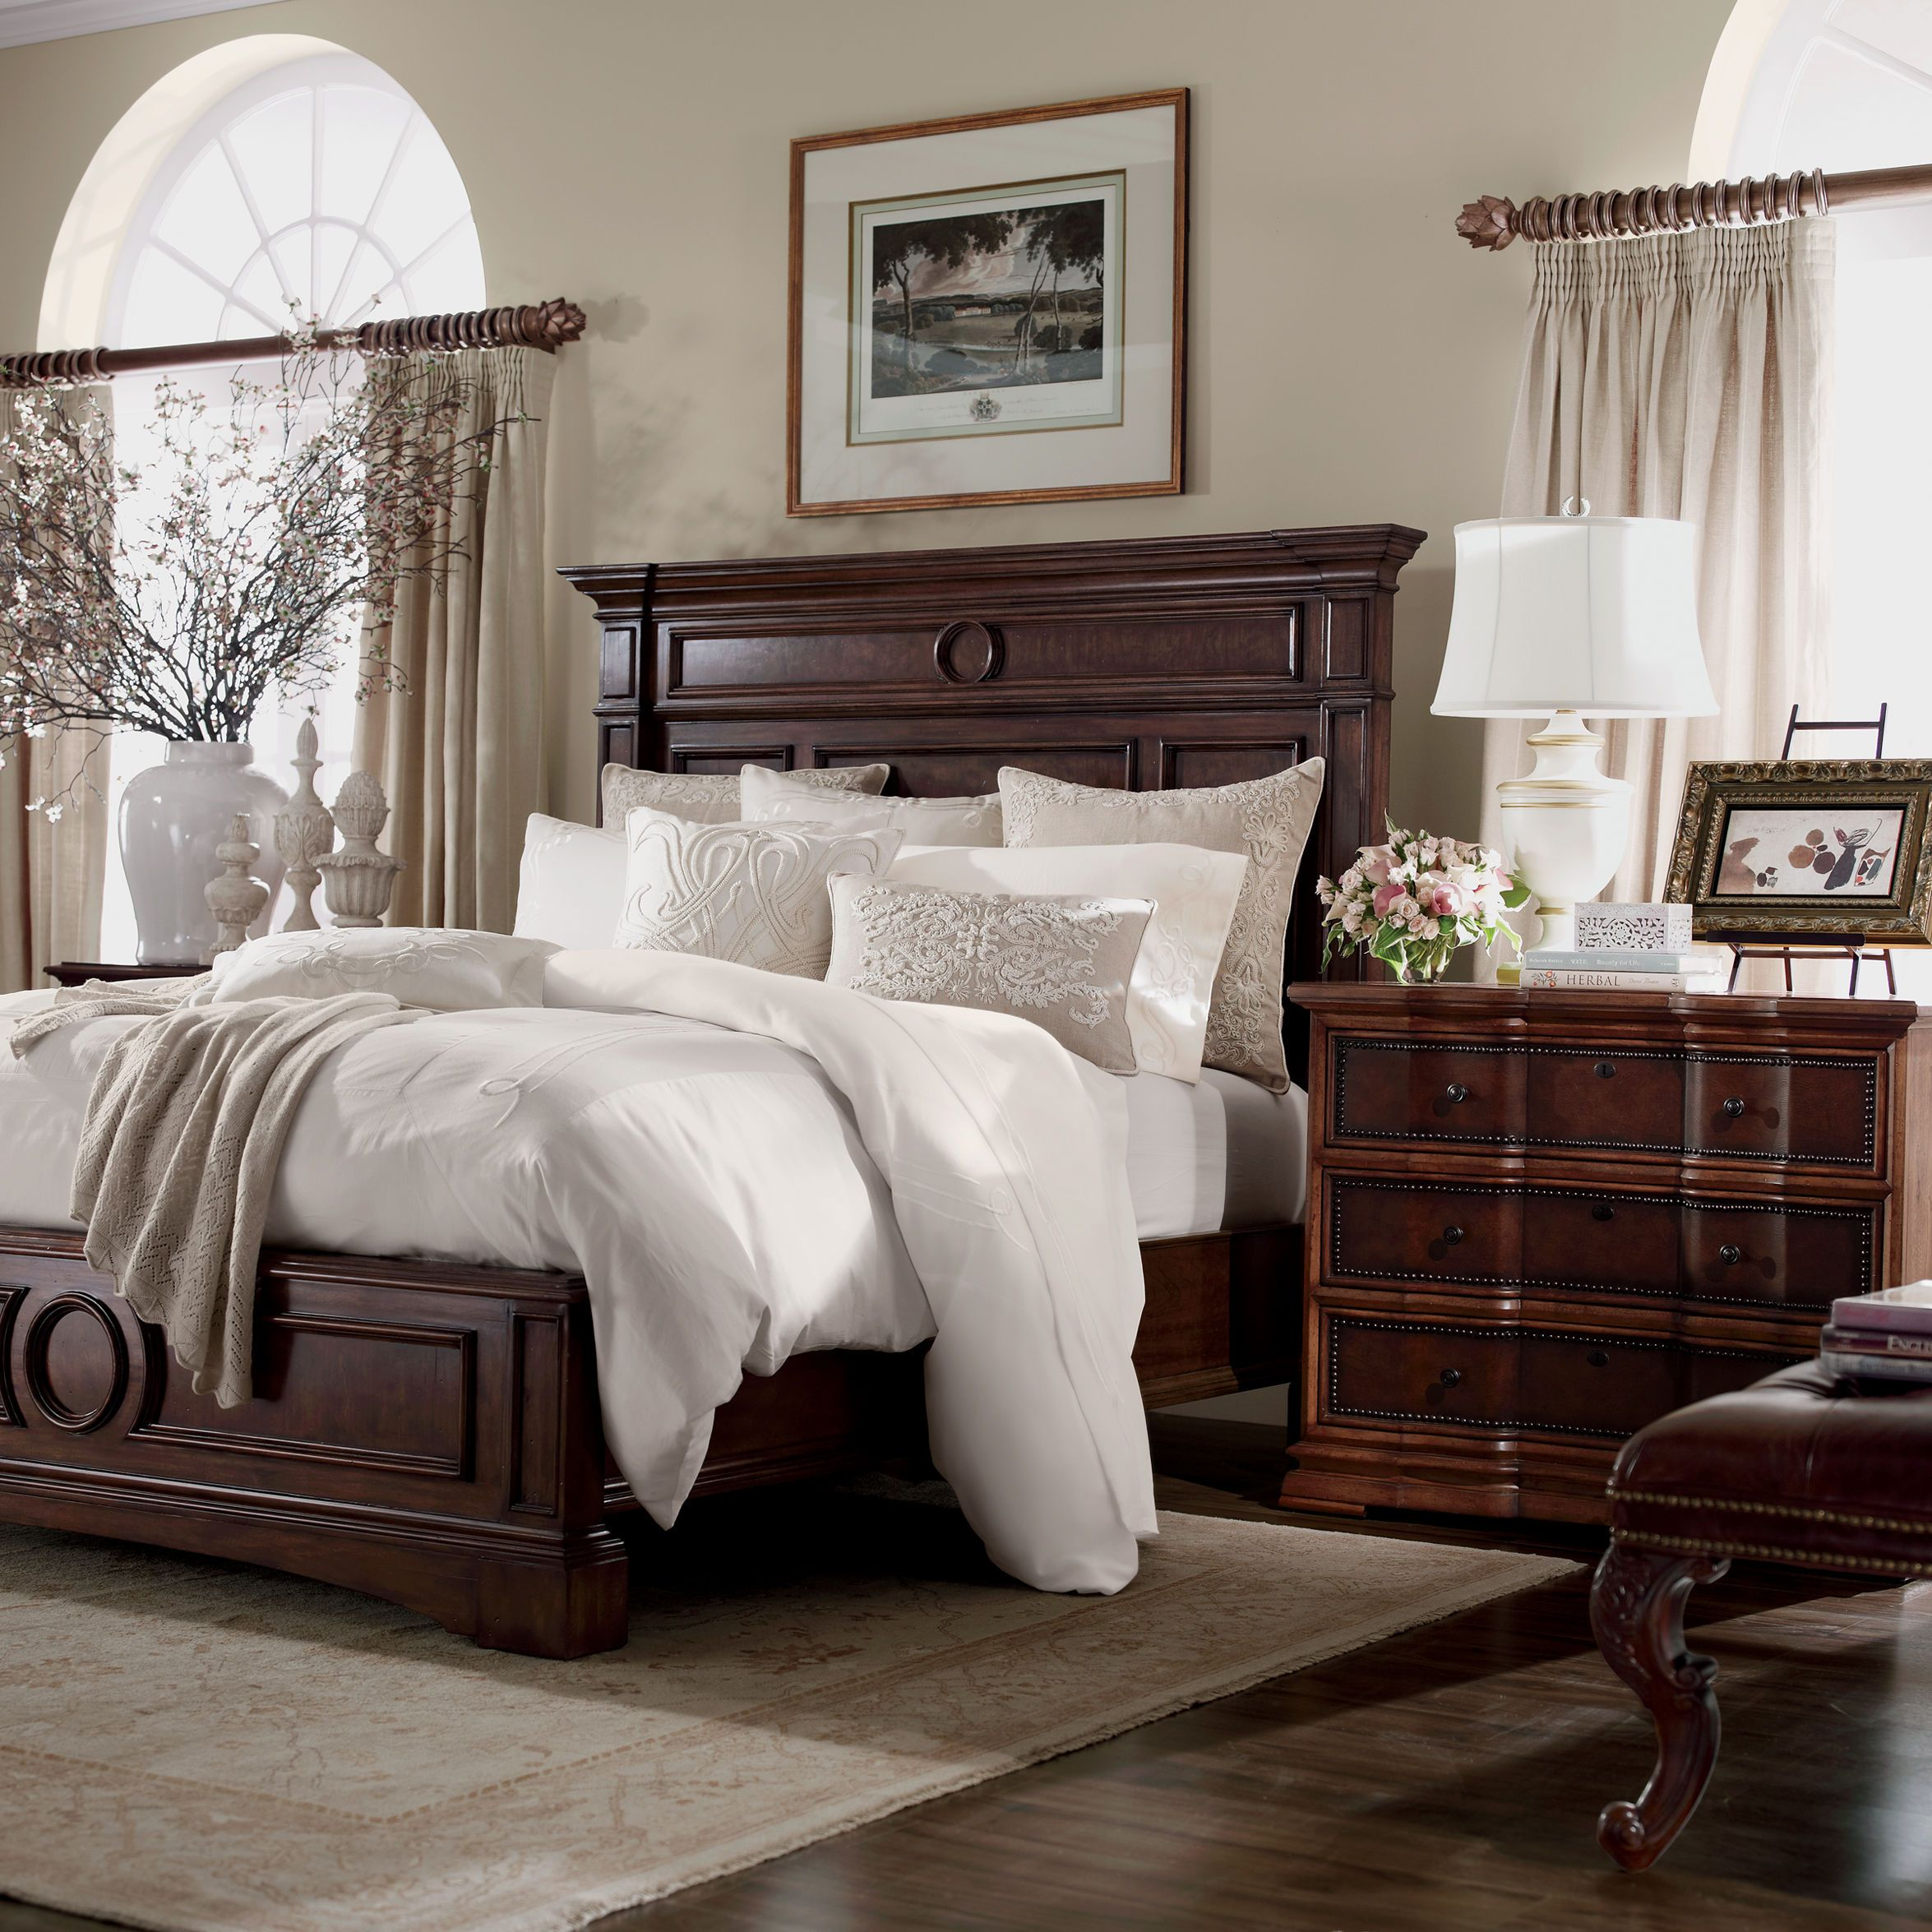 warwick bed ethan allen us there 39 s no place like home pinterest bedrooms master bedroom. Black Bedroom Furniture Sets. Home Design Ideas